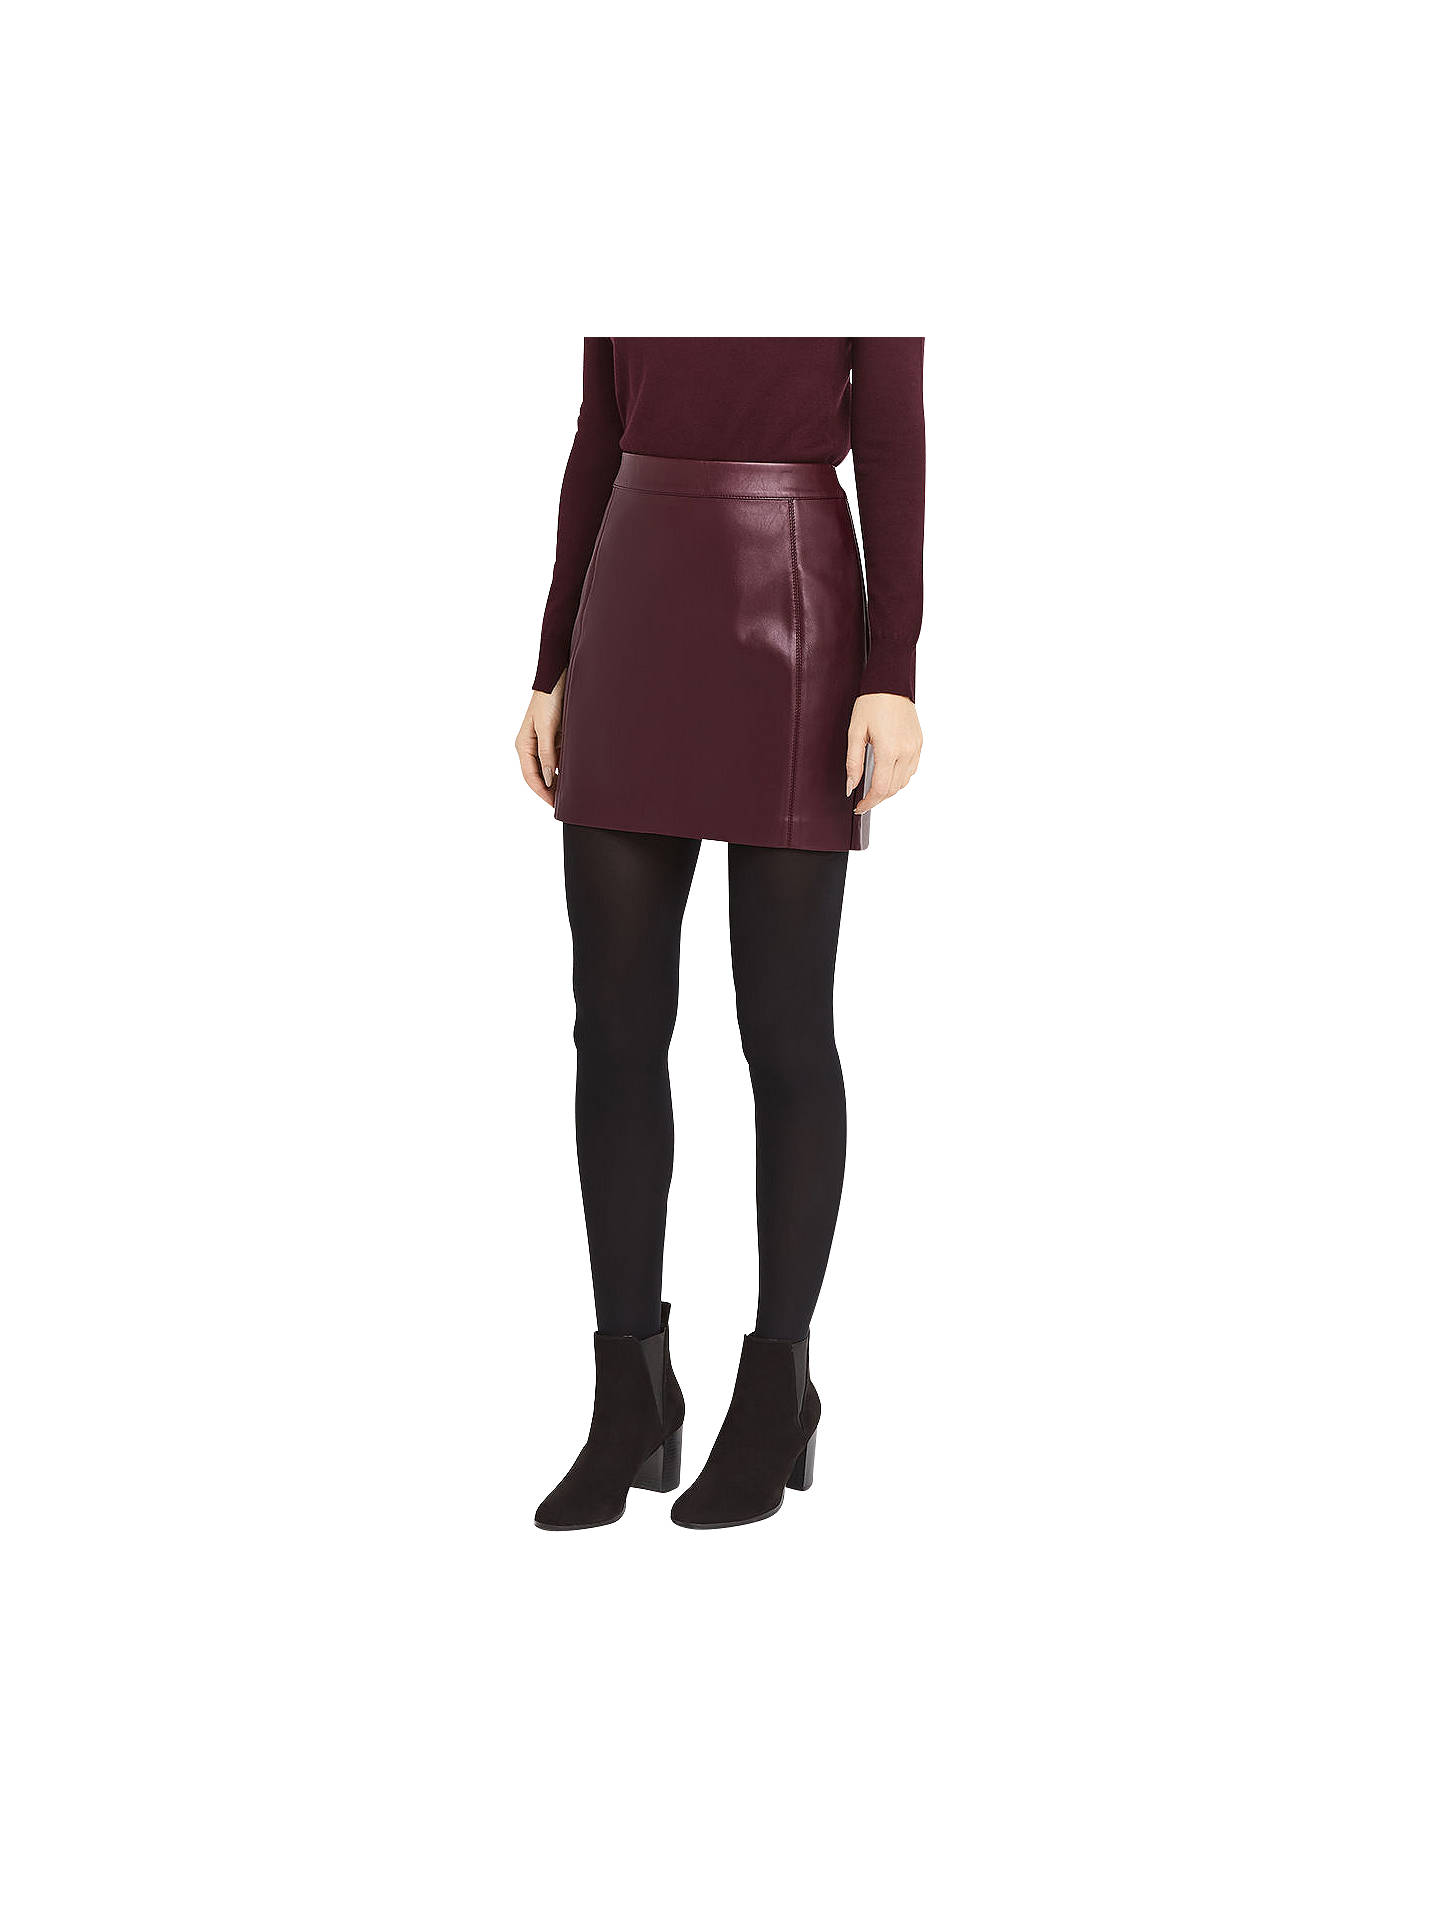 2f972d6d4 Buy Oasis Faux Leather Seamed Mini Skirt, Burgundy, 6 Online at  johnlewis.com ...